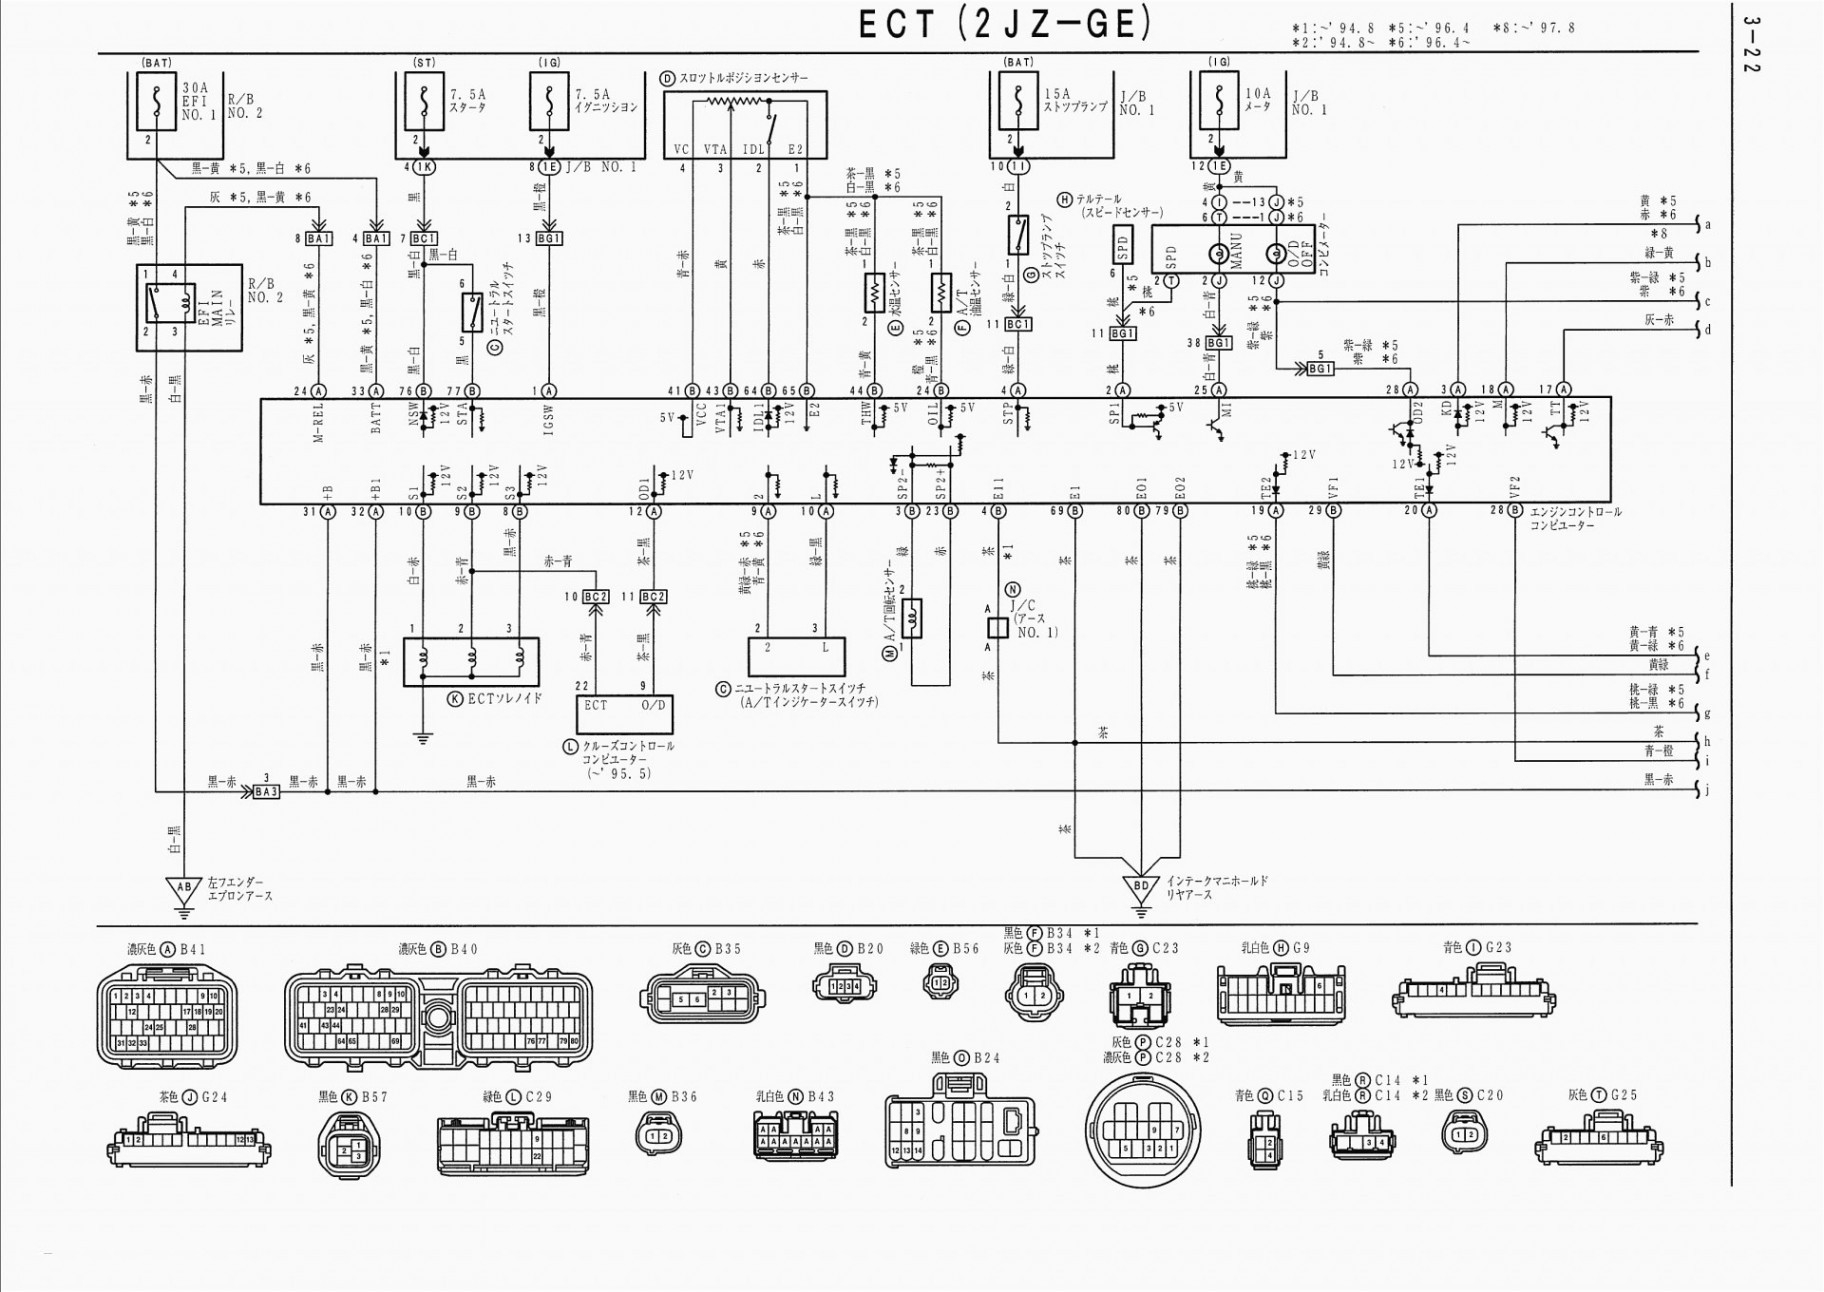 network wiring diagram Download-Wiring Diagram with Switch Inspirational Switch Wiring Diagram – Network Switch Diagram Fresh Web Diagram 0d 16-p